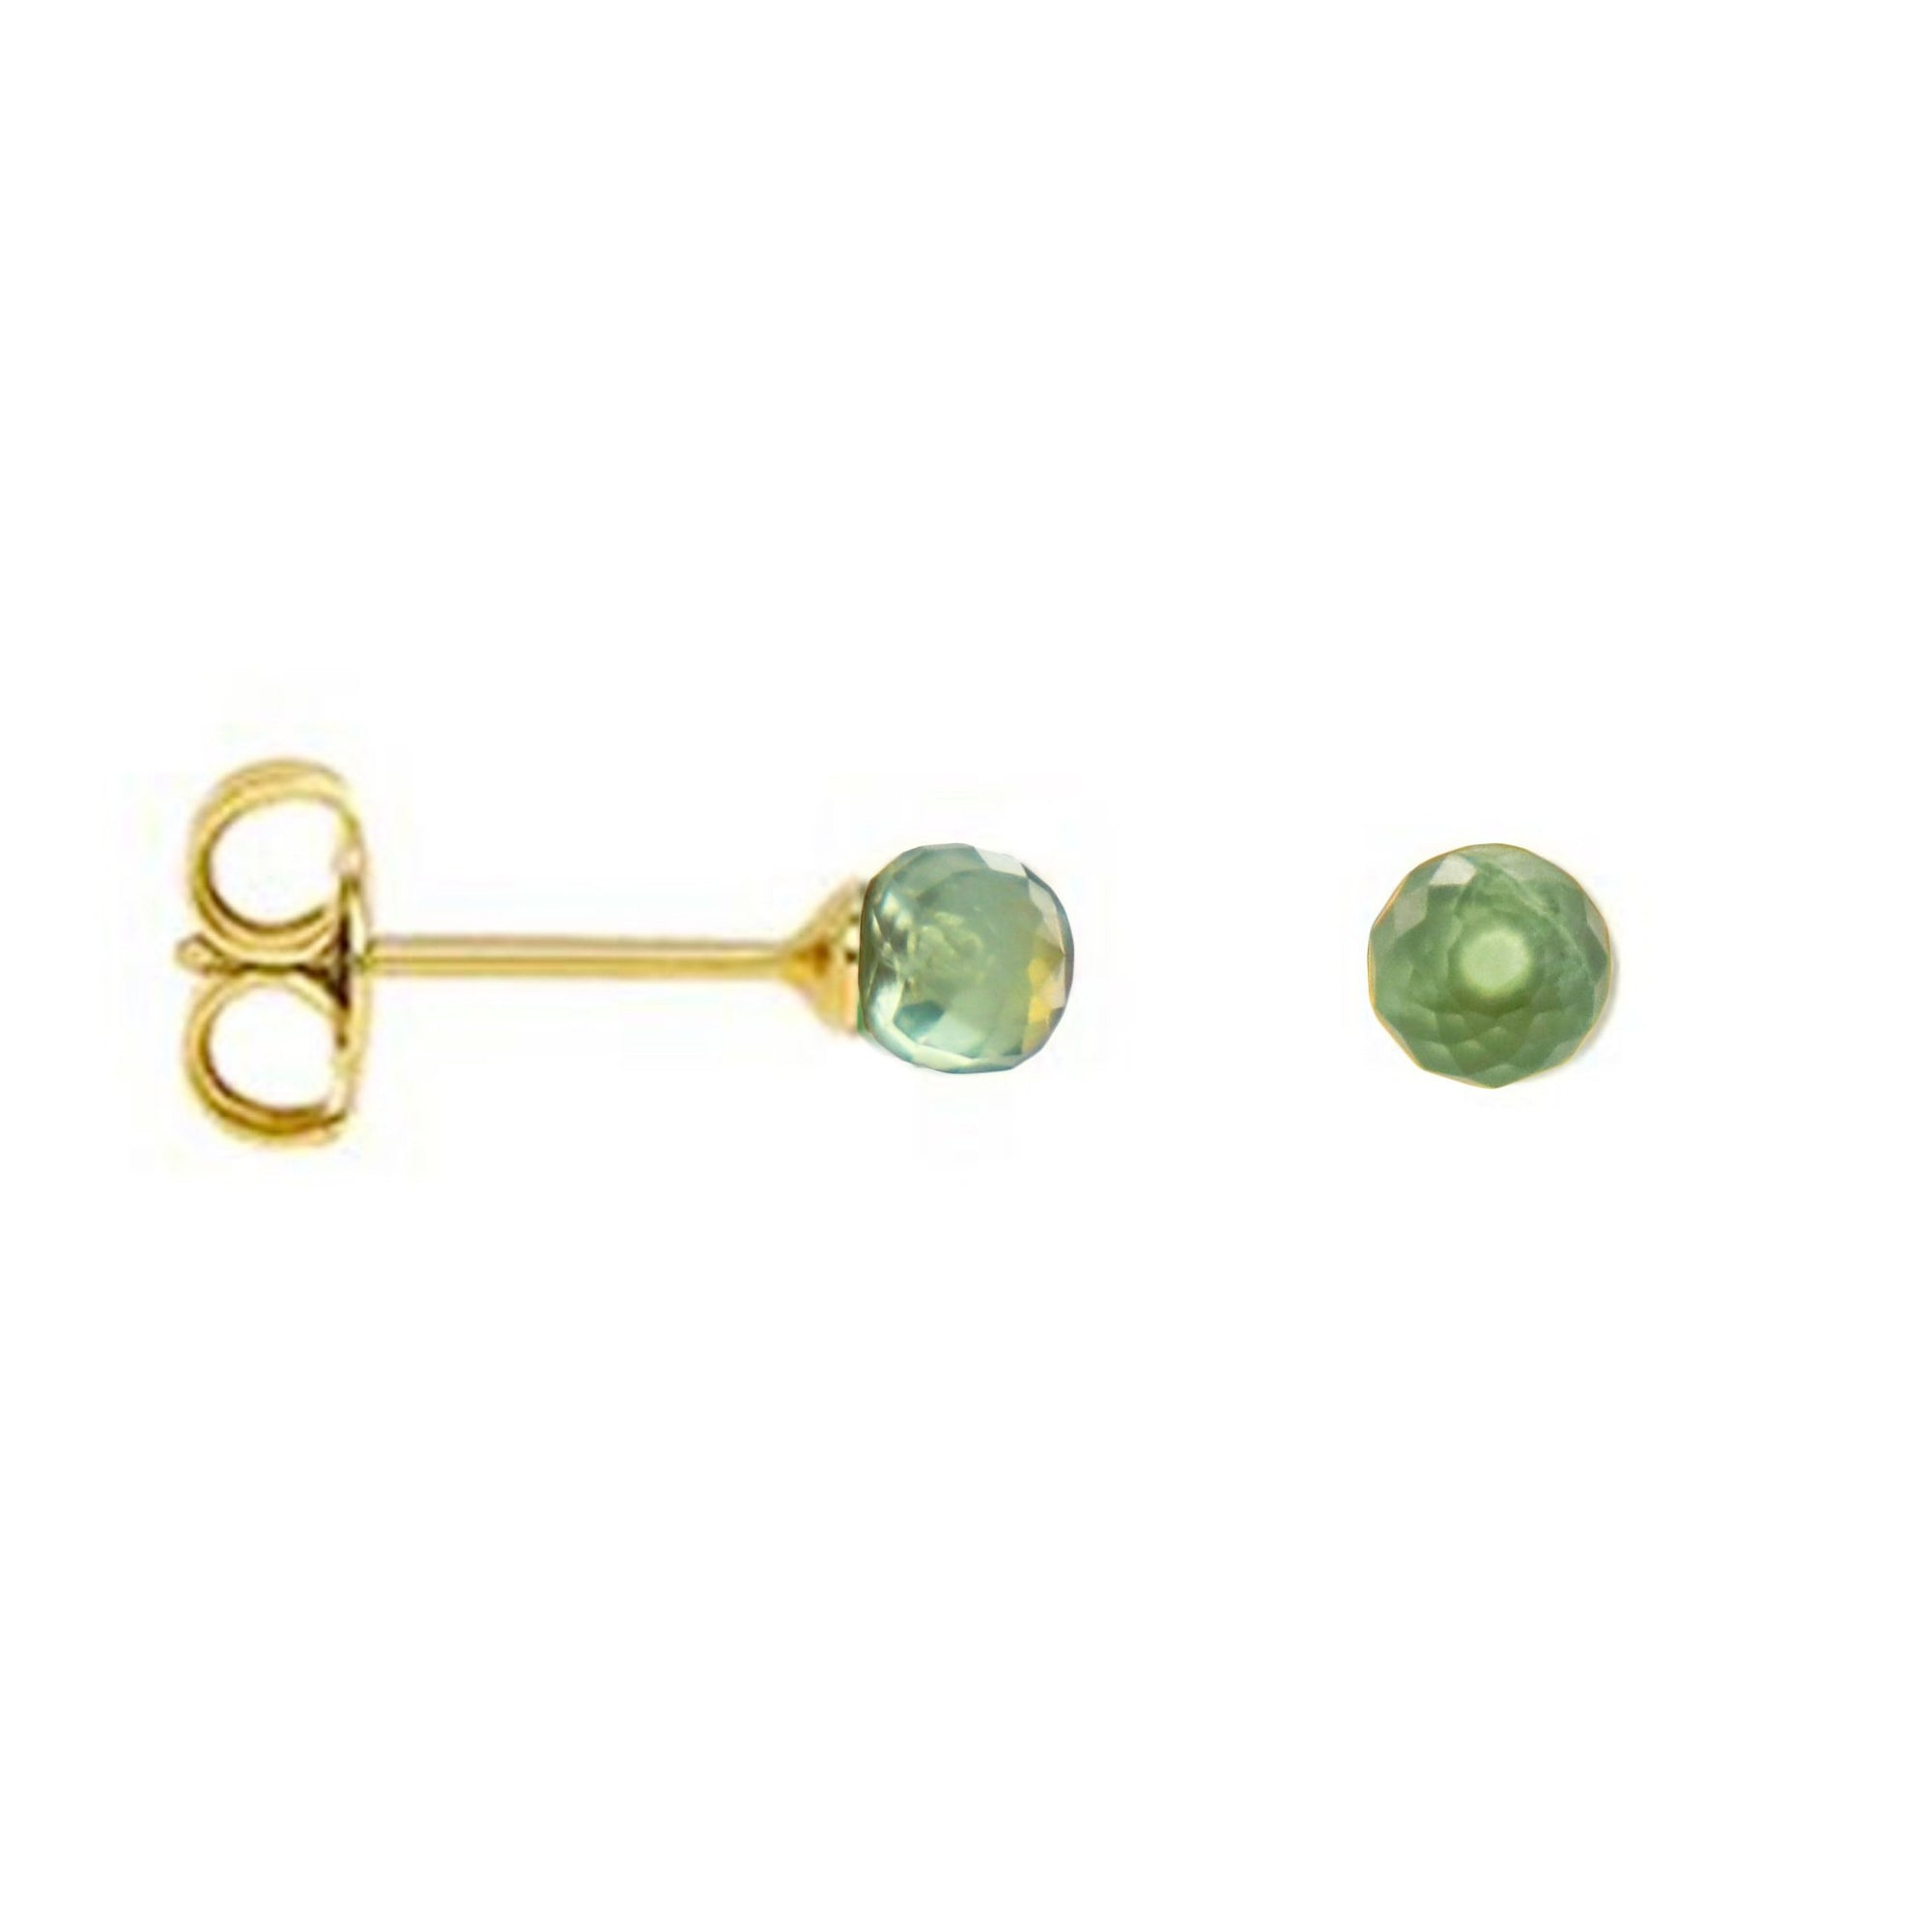 TINY PROTECT STUD EARRINGS - MINT PREHNITE & GOLD